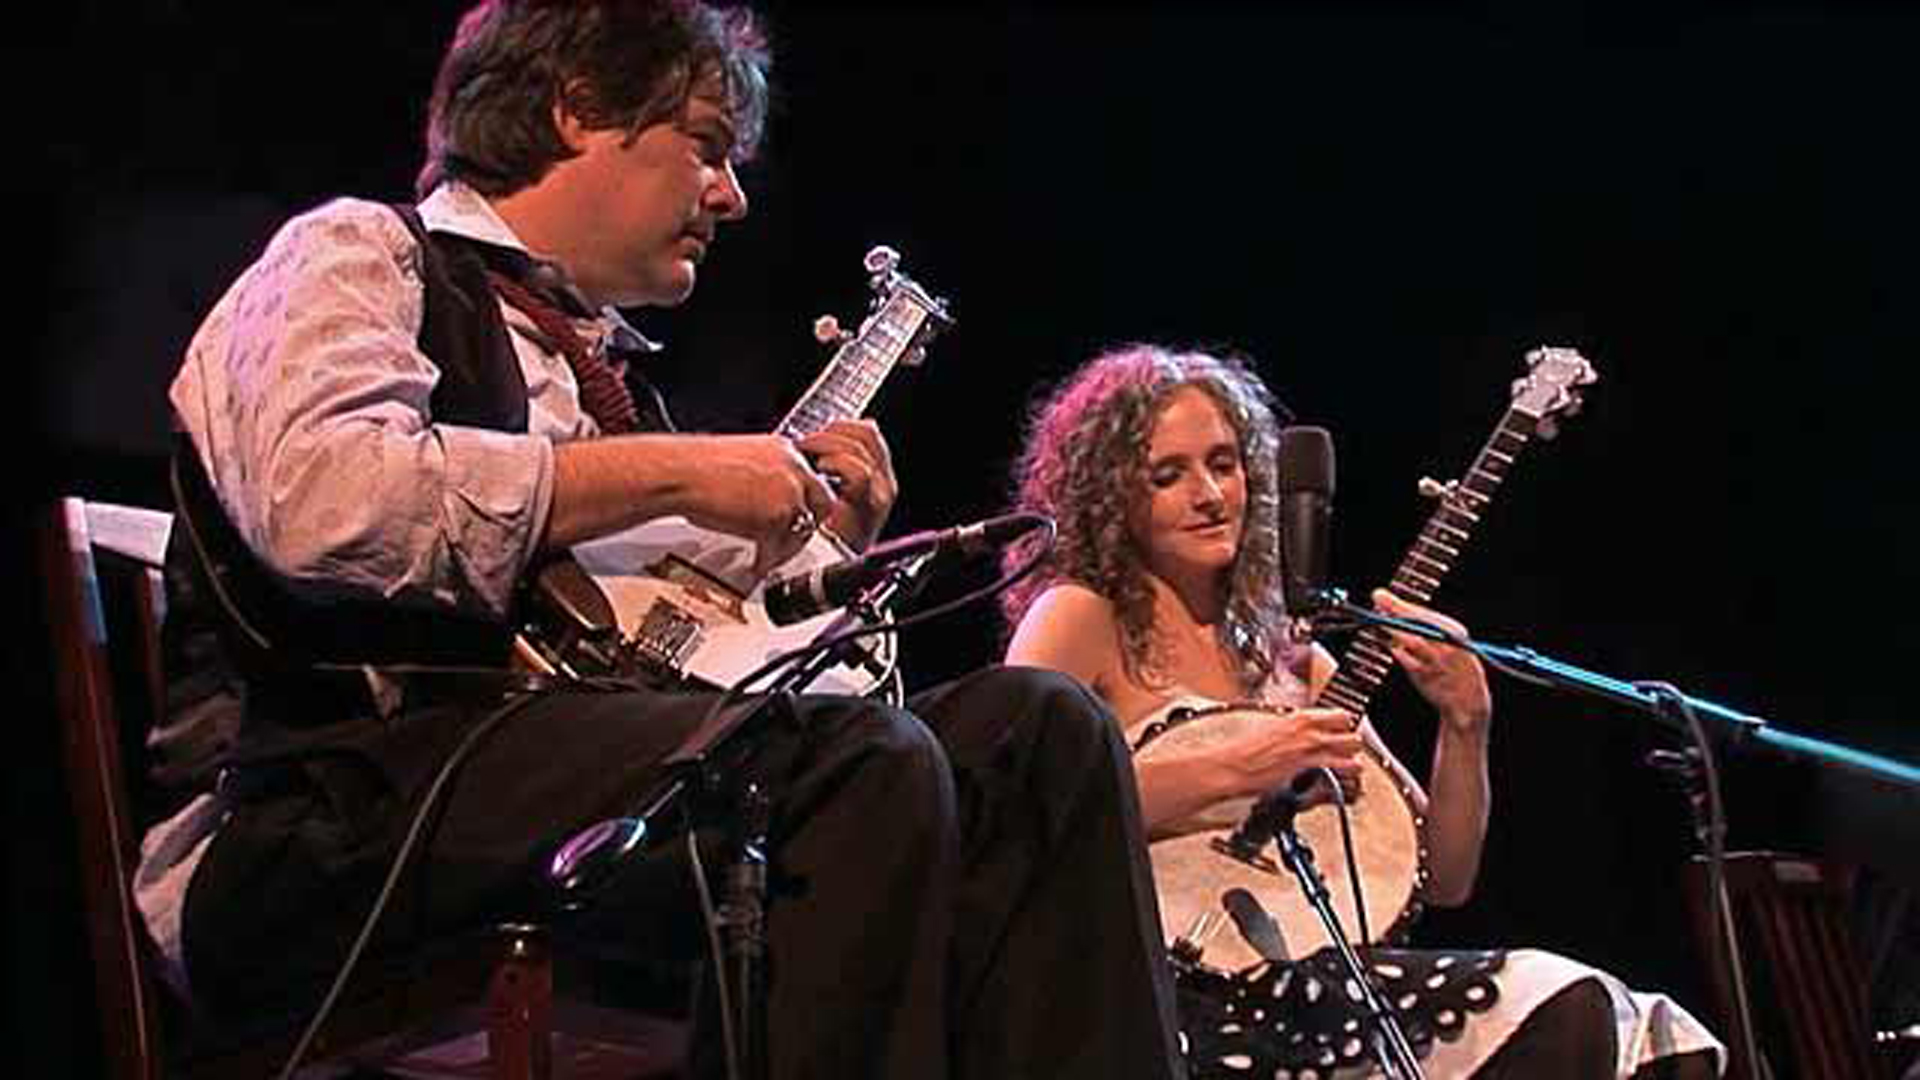 Abigail Washburn's journeys to China have made her a 21st century Marco Polo of music, mixing folk traditions of east and west.